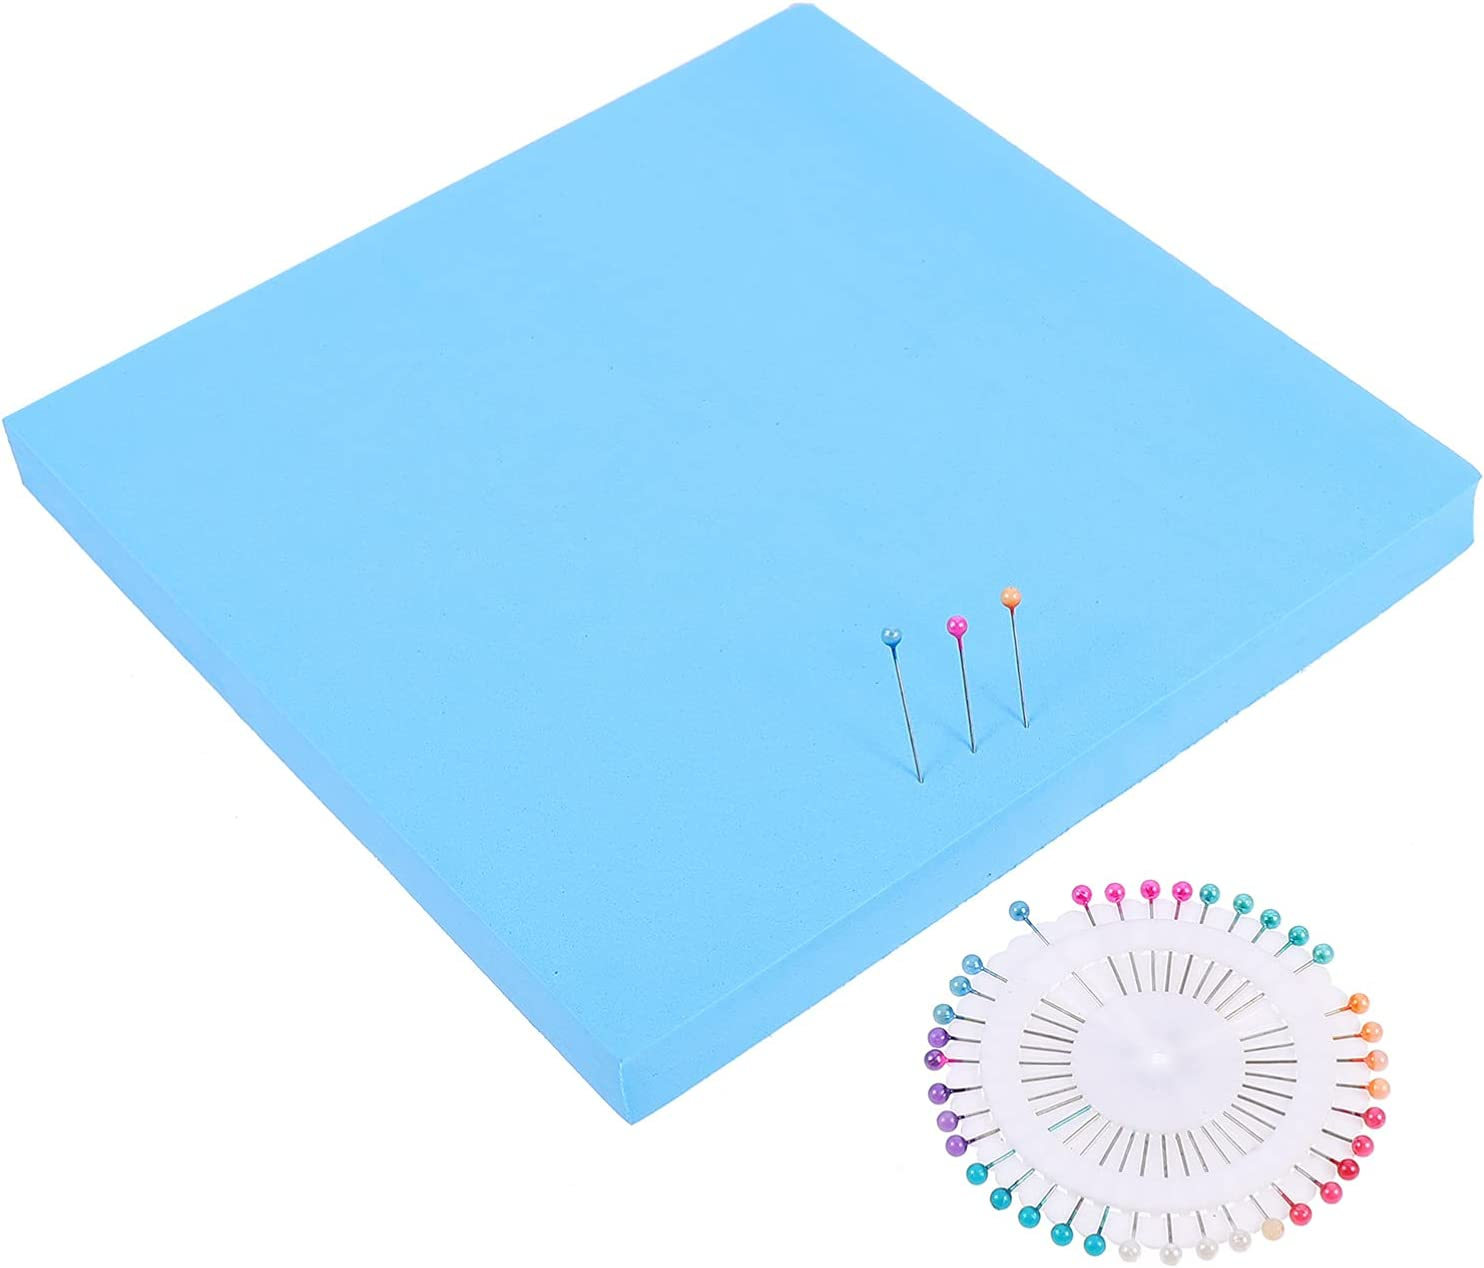 ARTIBETTER Max 76% OFF Braiding Disk with Pin Disc Square Kumihimo 20cm Bead Al sold out.